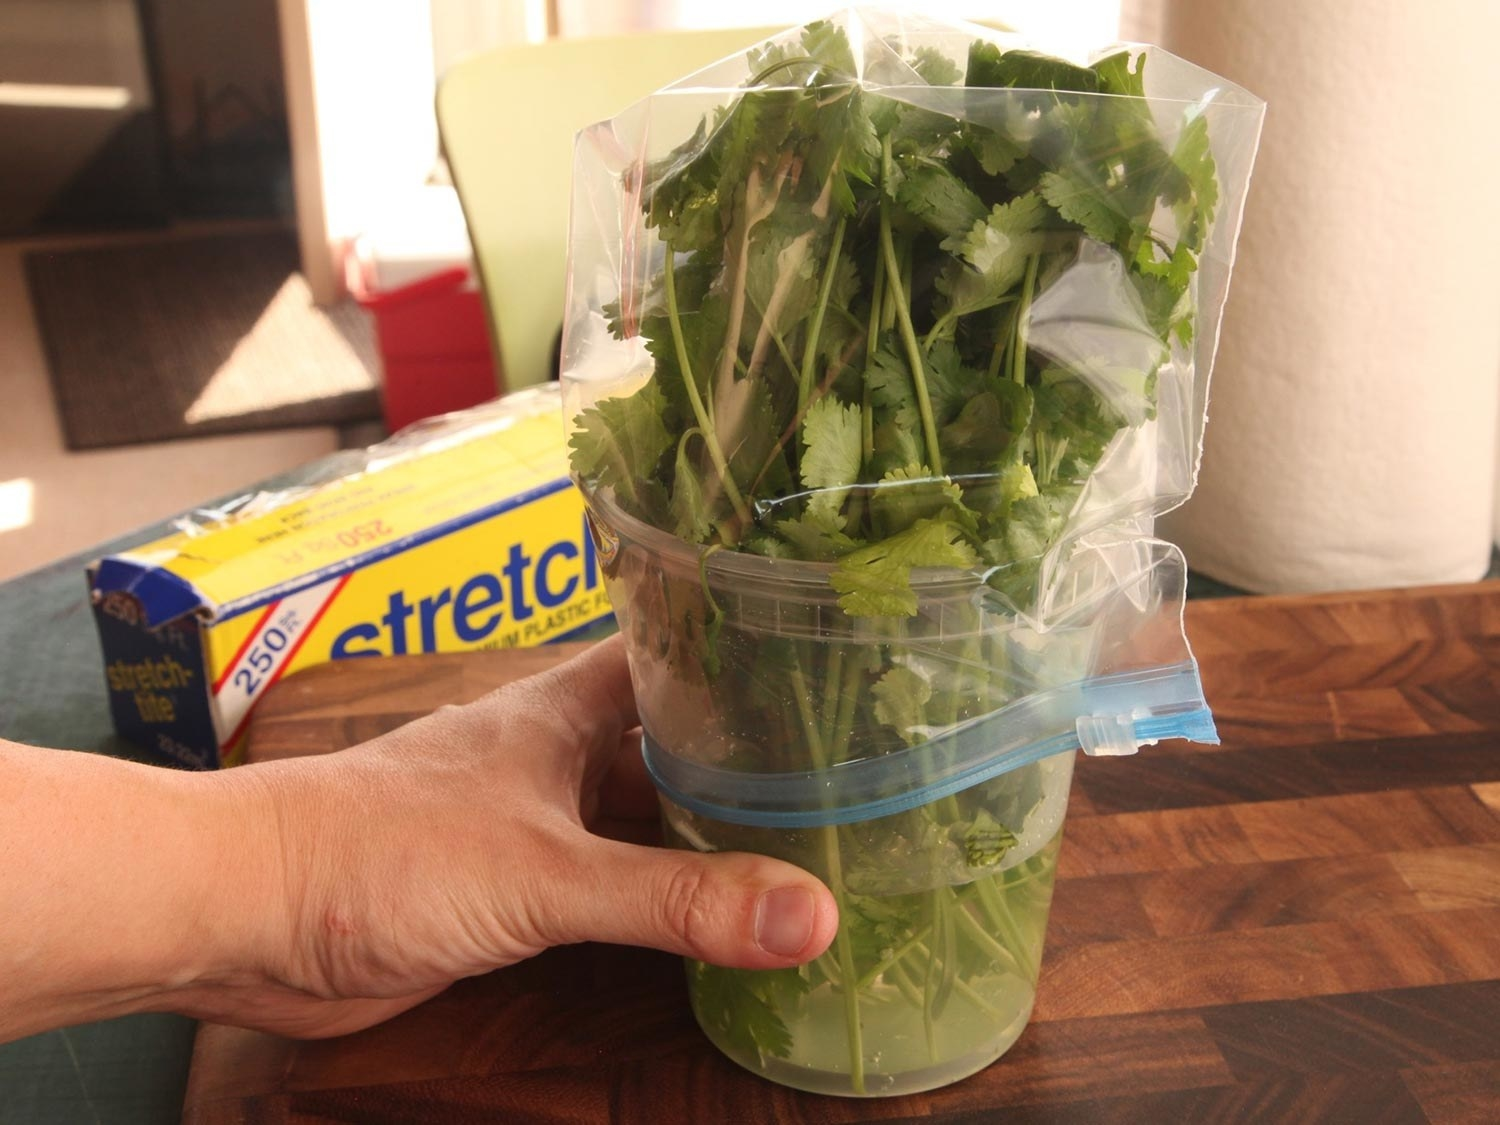 Cilantro stored upright in a jar of water and covered with a ziplock bag